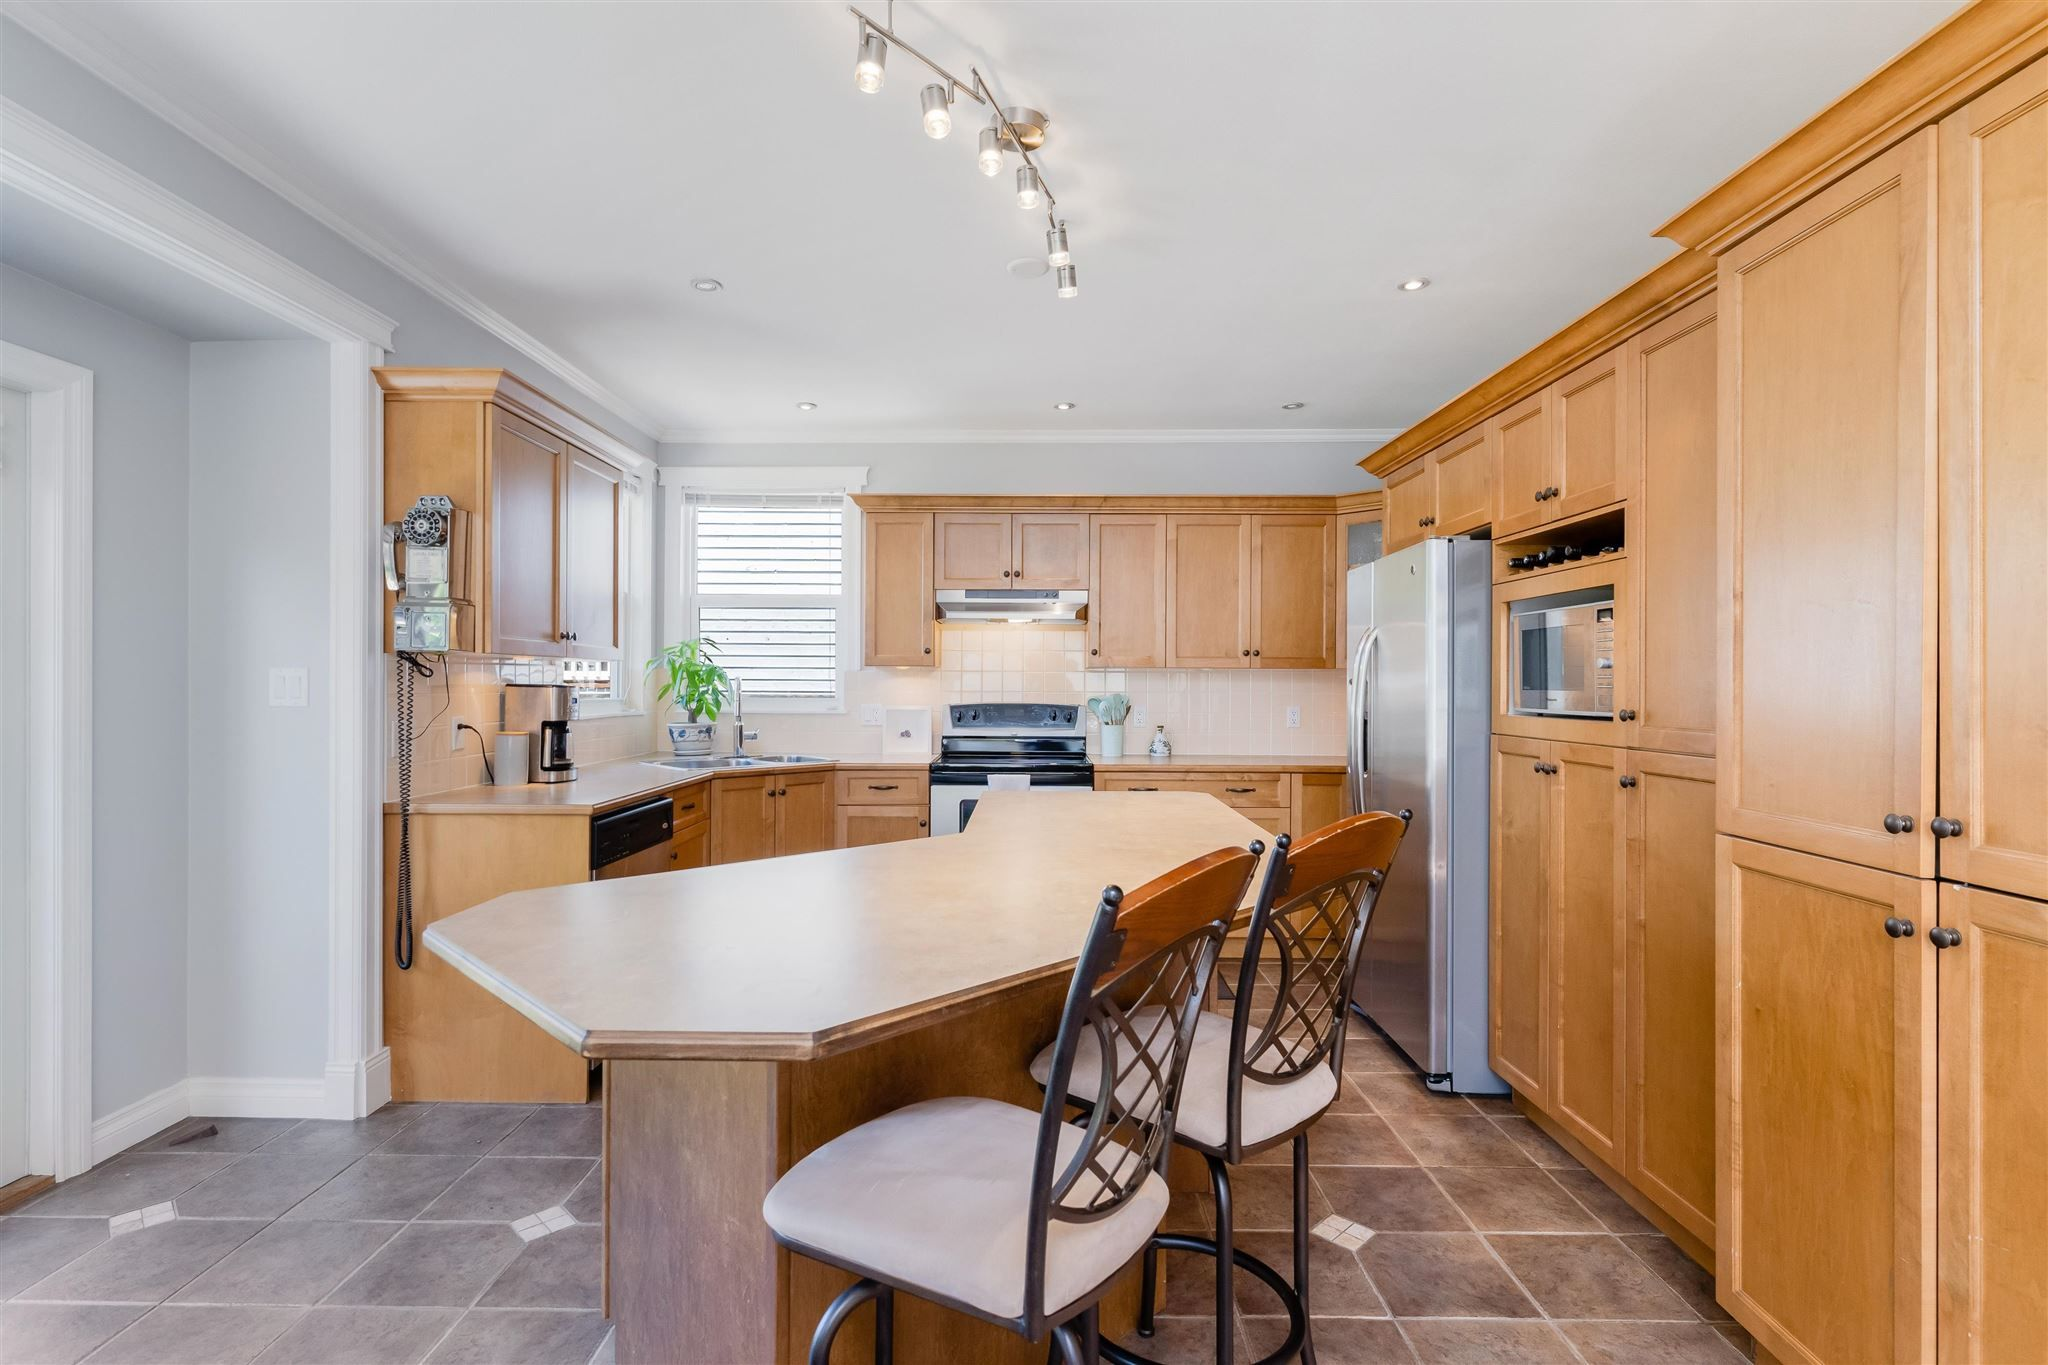 Photo 9: Photos: 412 FIFTH STREET in New Westminster: Queens Park House for sale : MLS®# R2594885